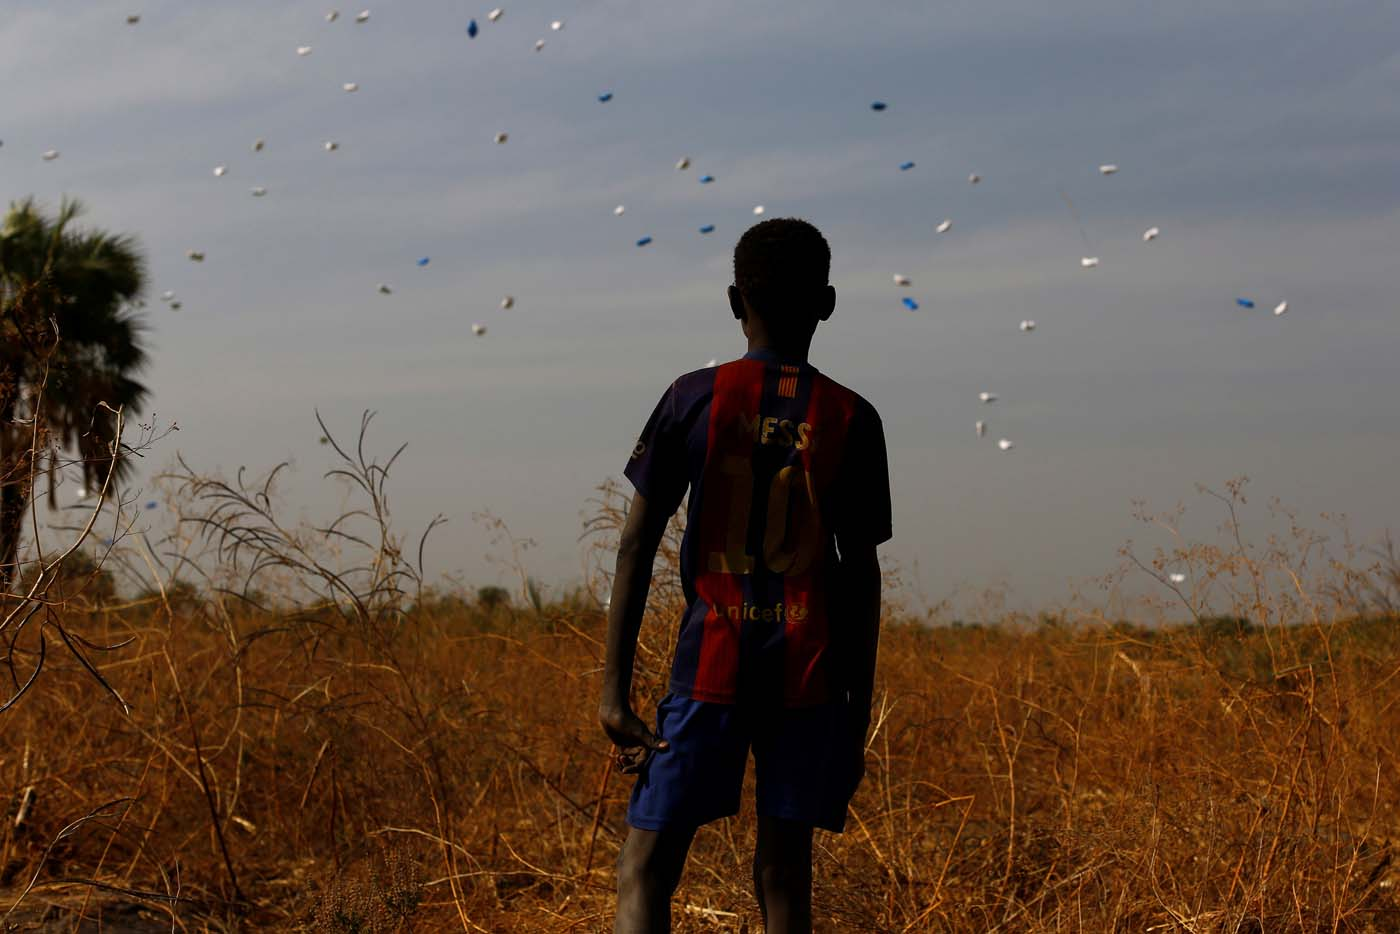 A boy watches sacks of food drop to the ground during a United Nations World Food Programme (WFP) airdrop close to Rubkuai village in Unity State, northern South Sudan, February 18, 2017. Picture taken February 18, 2017. REUTERS/Siegfried Modola